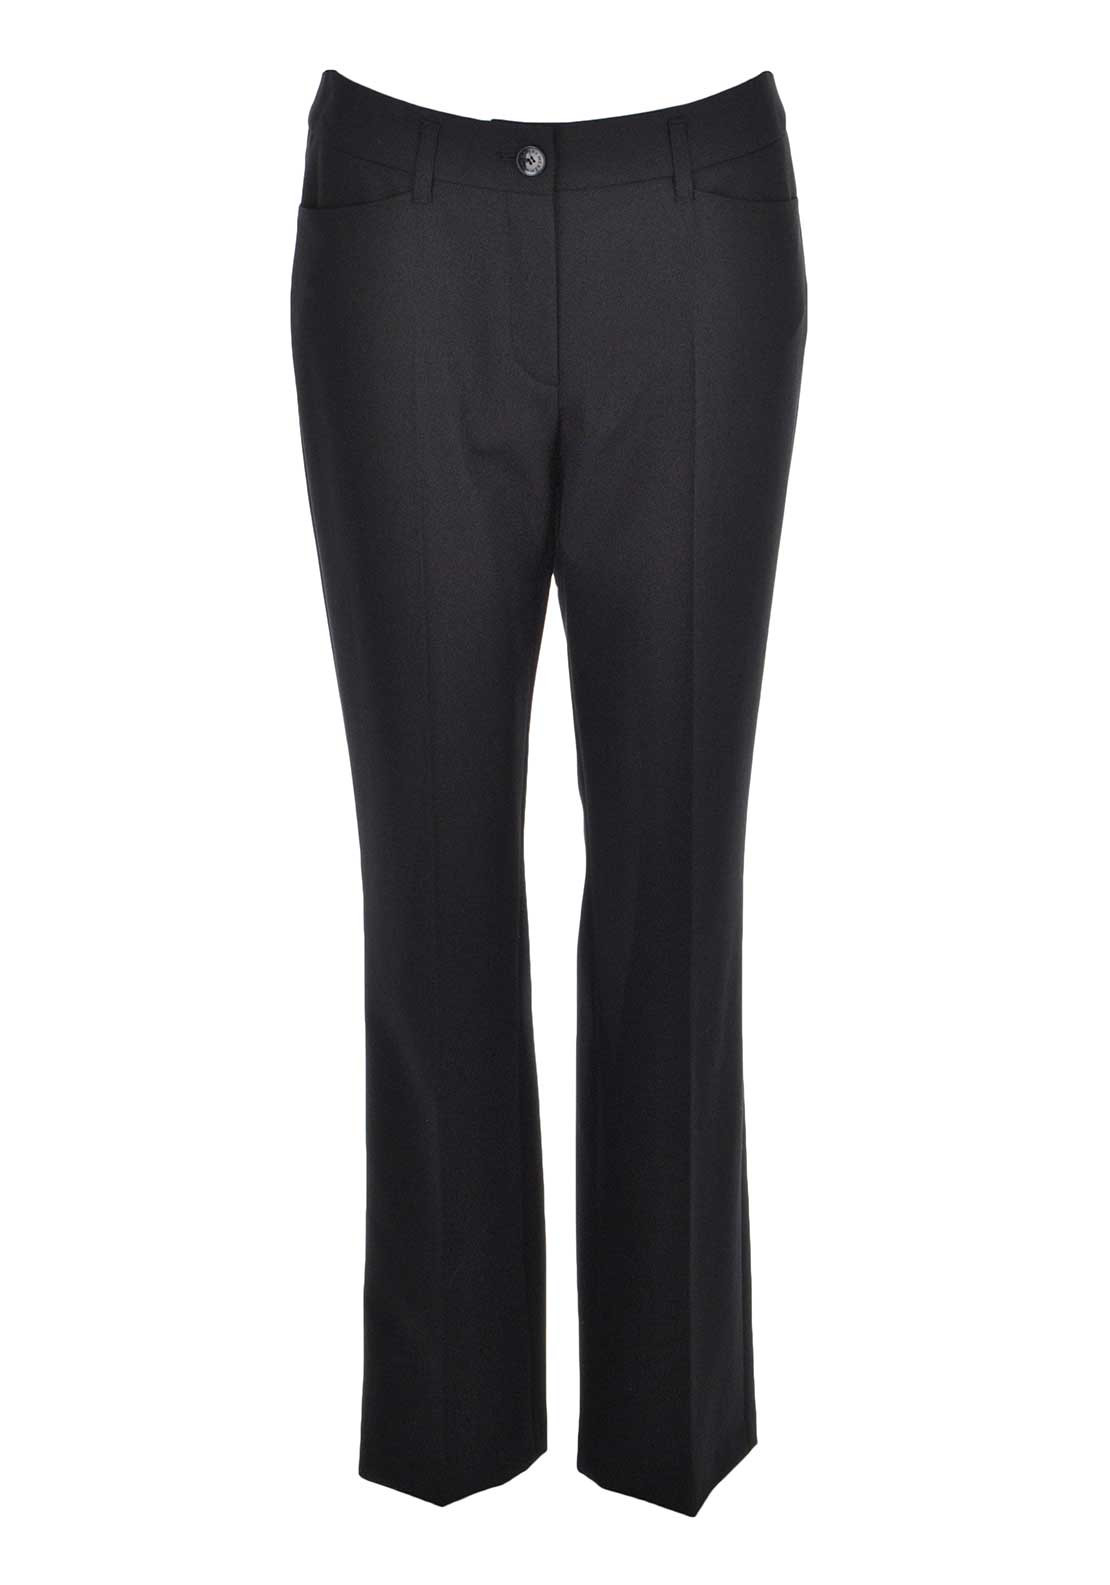 Gerry Weber Pamela Regular Leg Trouser, Black